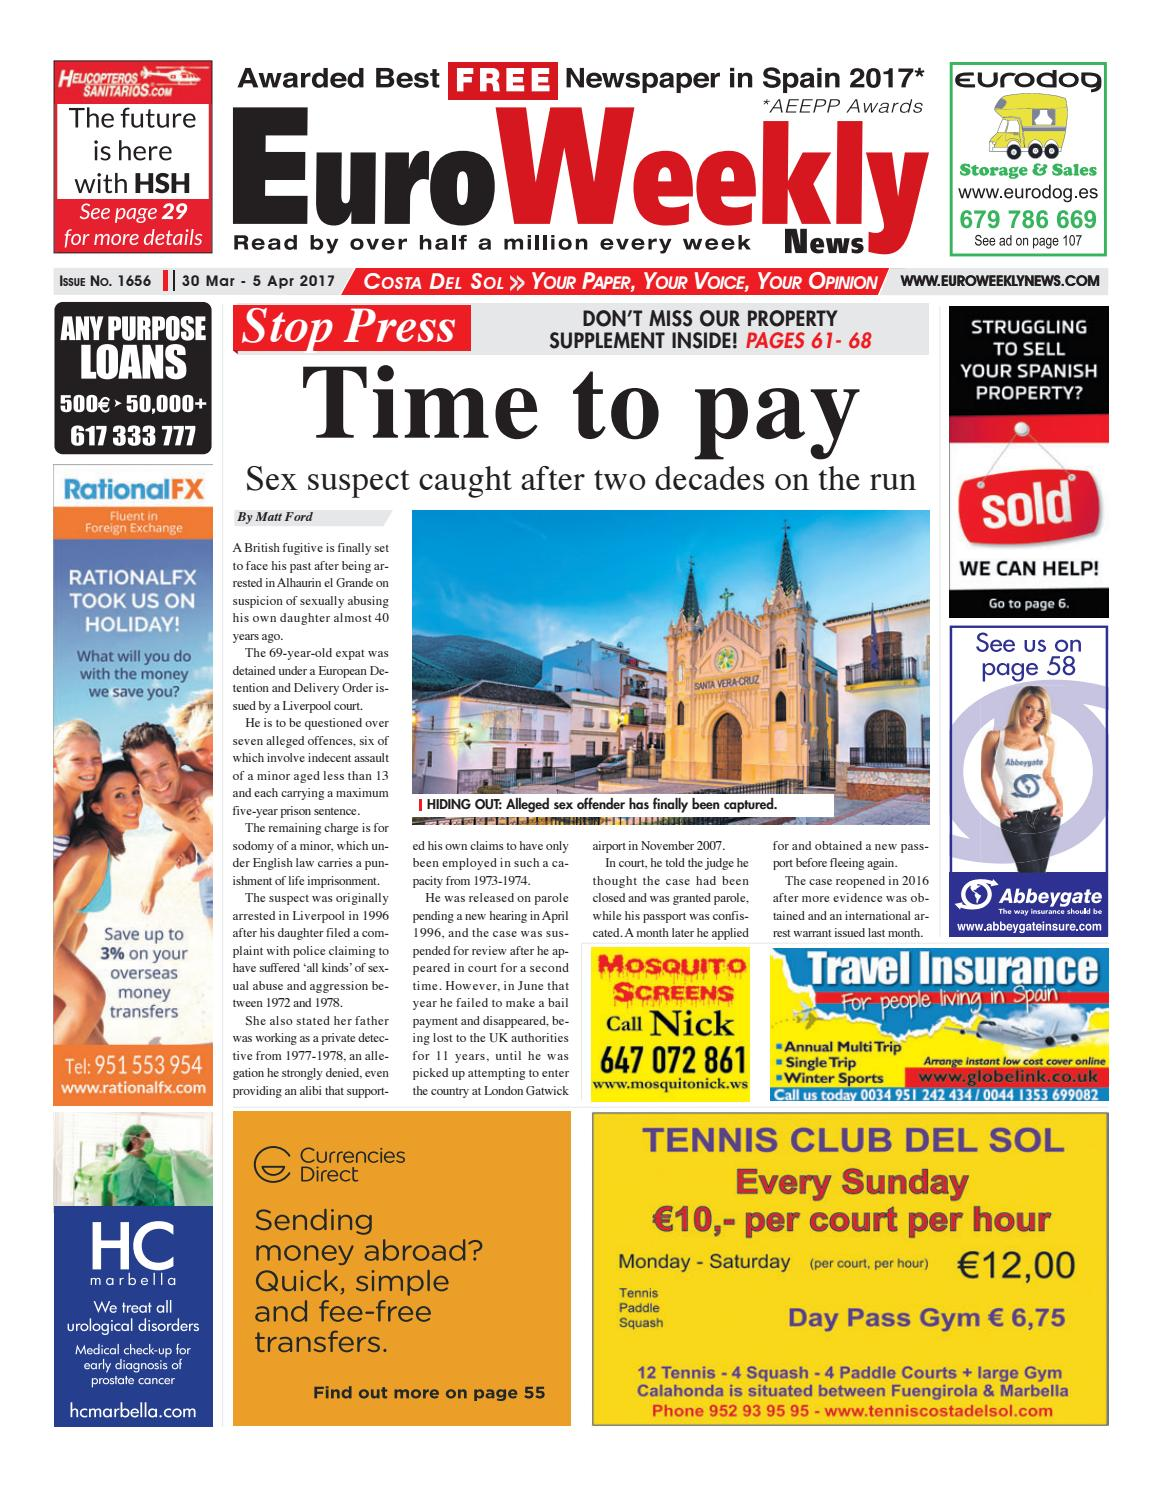 Euro Weekly News - Costa del Sol 30 March - 5 April 2017 Issue 1656 by Euro  Weekly News Media S.A. - issuu 17d57e6b7